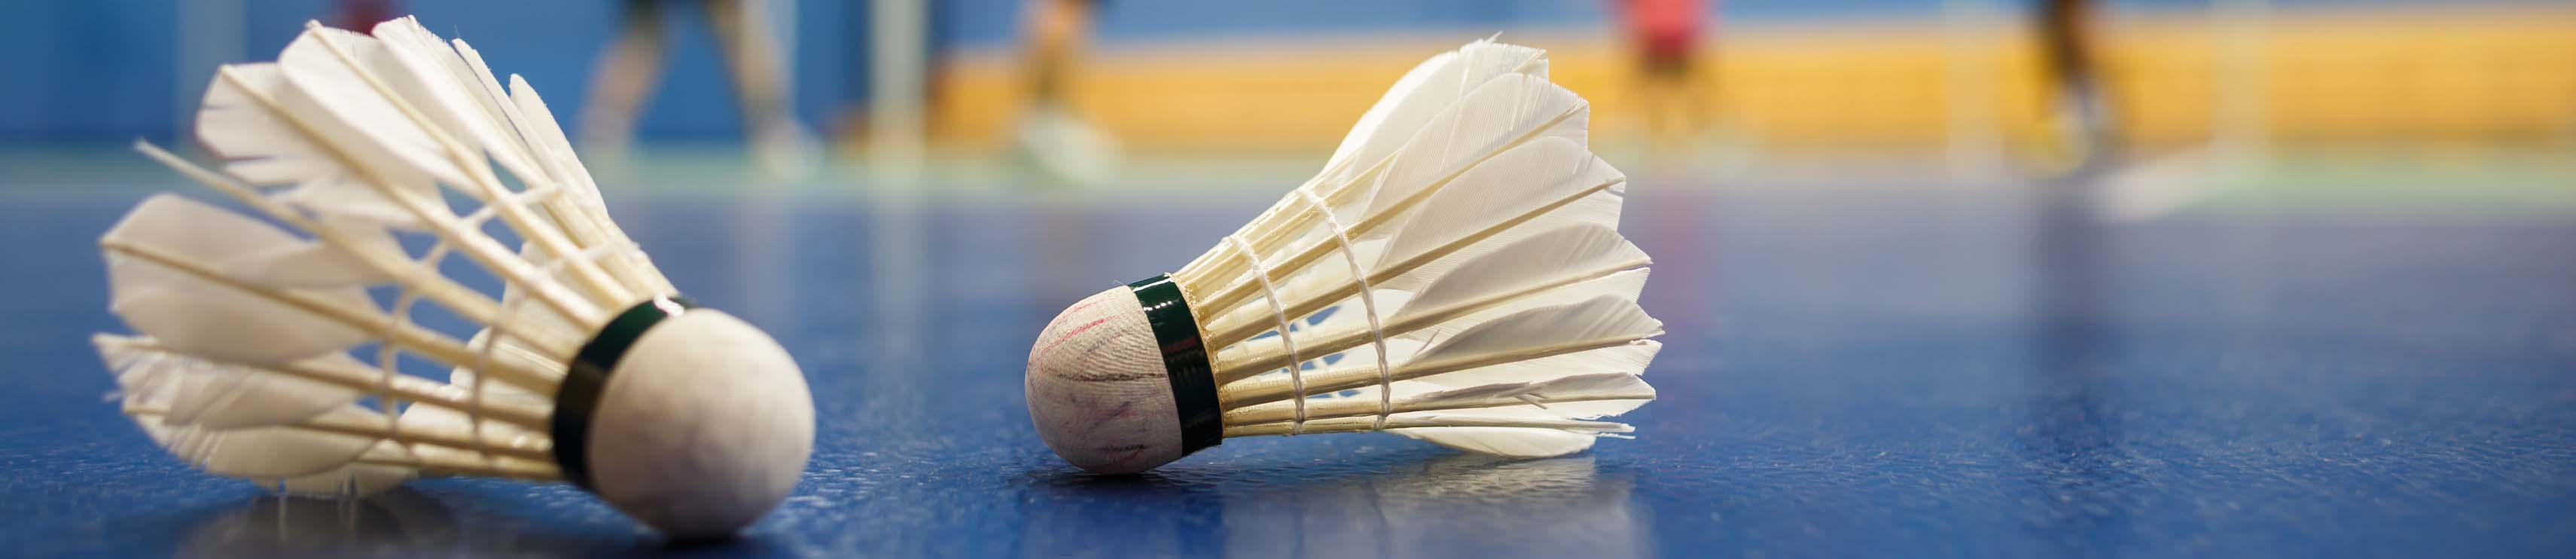 Dieppe Badminton Club : site officiel du club de badminton de LA CRIQUE - clubeo